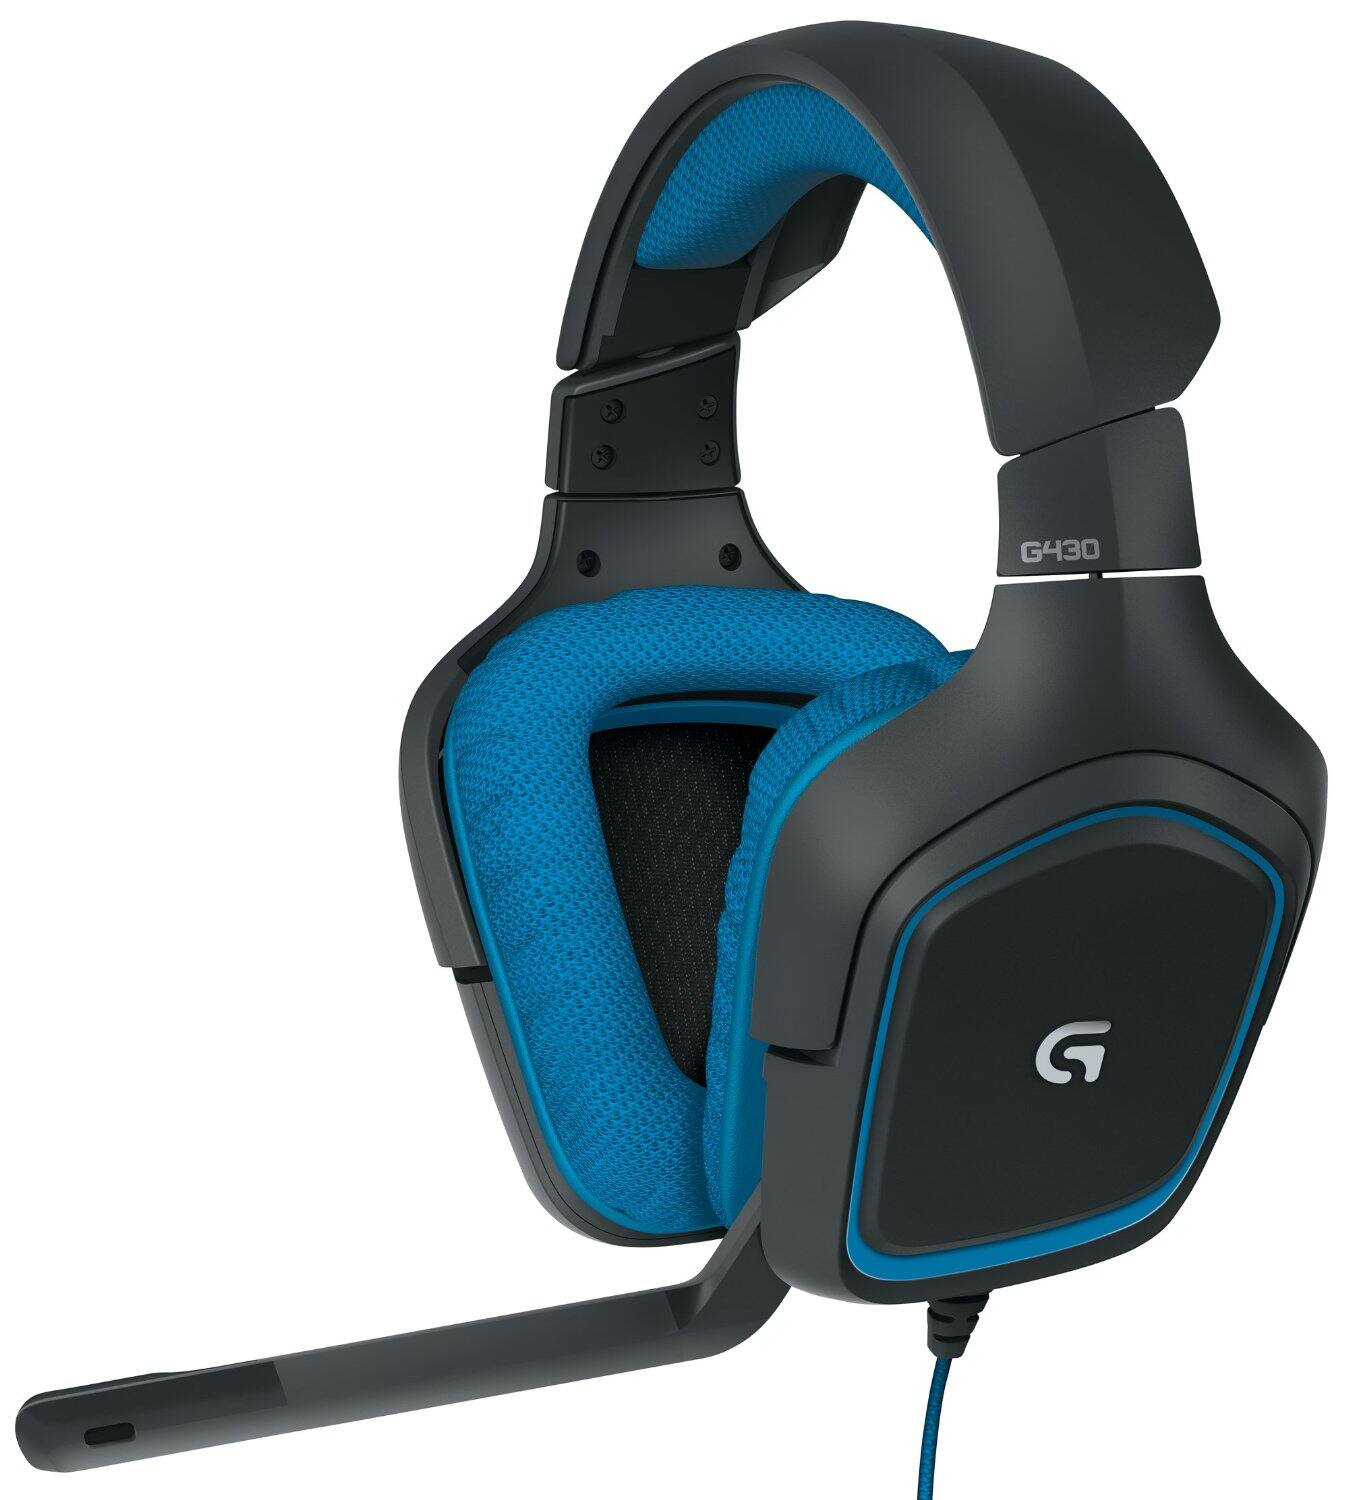 Logitech G430 gaming headset free after PM + GC, Logitech G502 Proteus gaming mouse $20 after PM + GC